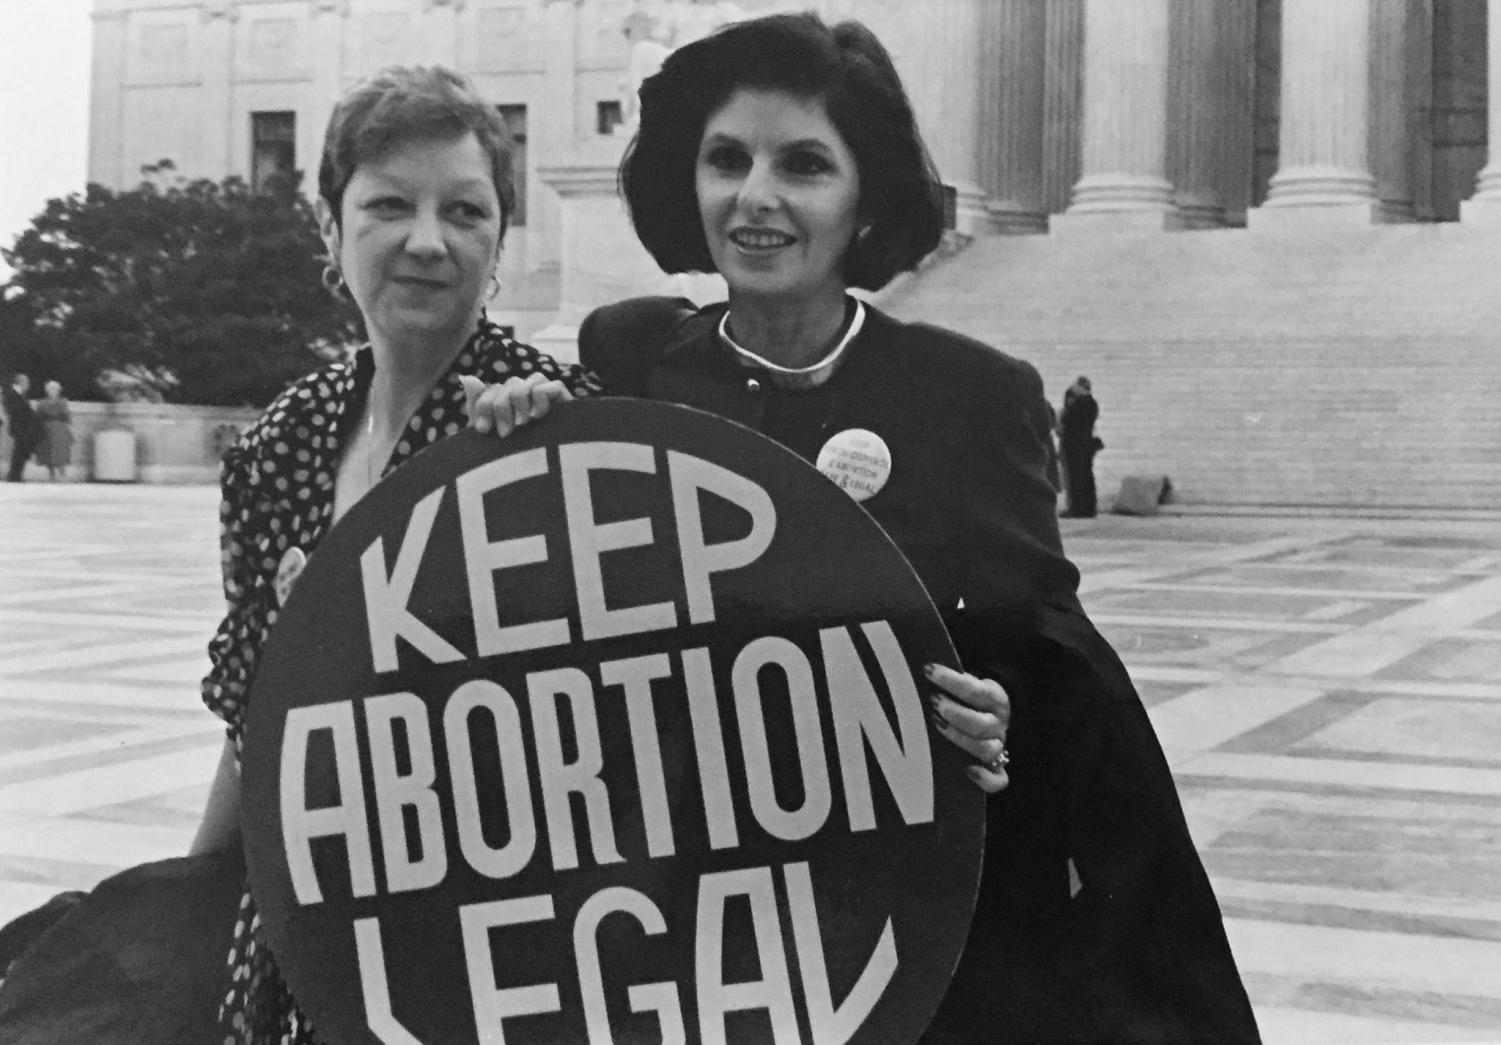 Standing outside the Supreme Court was Norma McCorvery, also known as Jane Roe, in 1989 as she fought in the influential court case: Roe v Wade, and effectively triggering an endless debate in America.